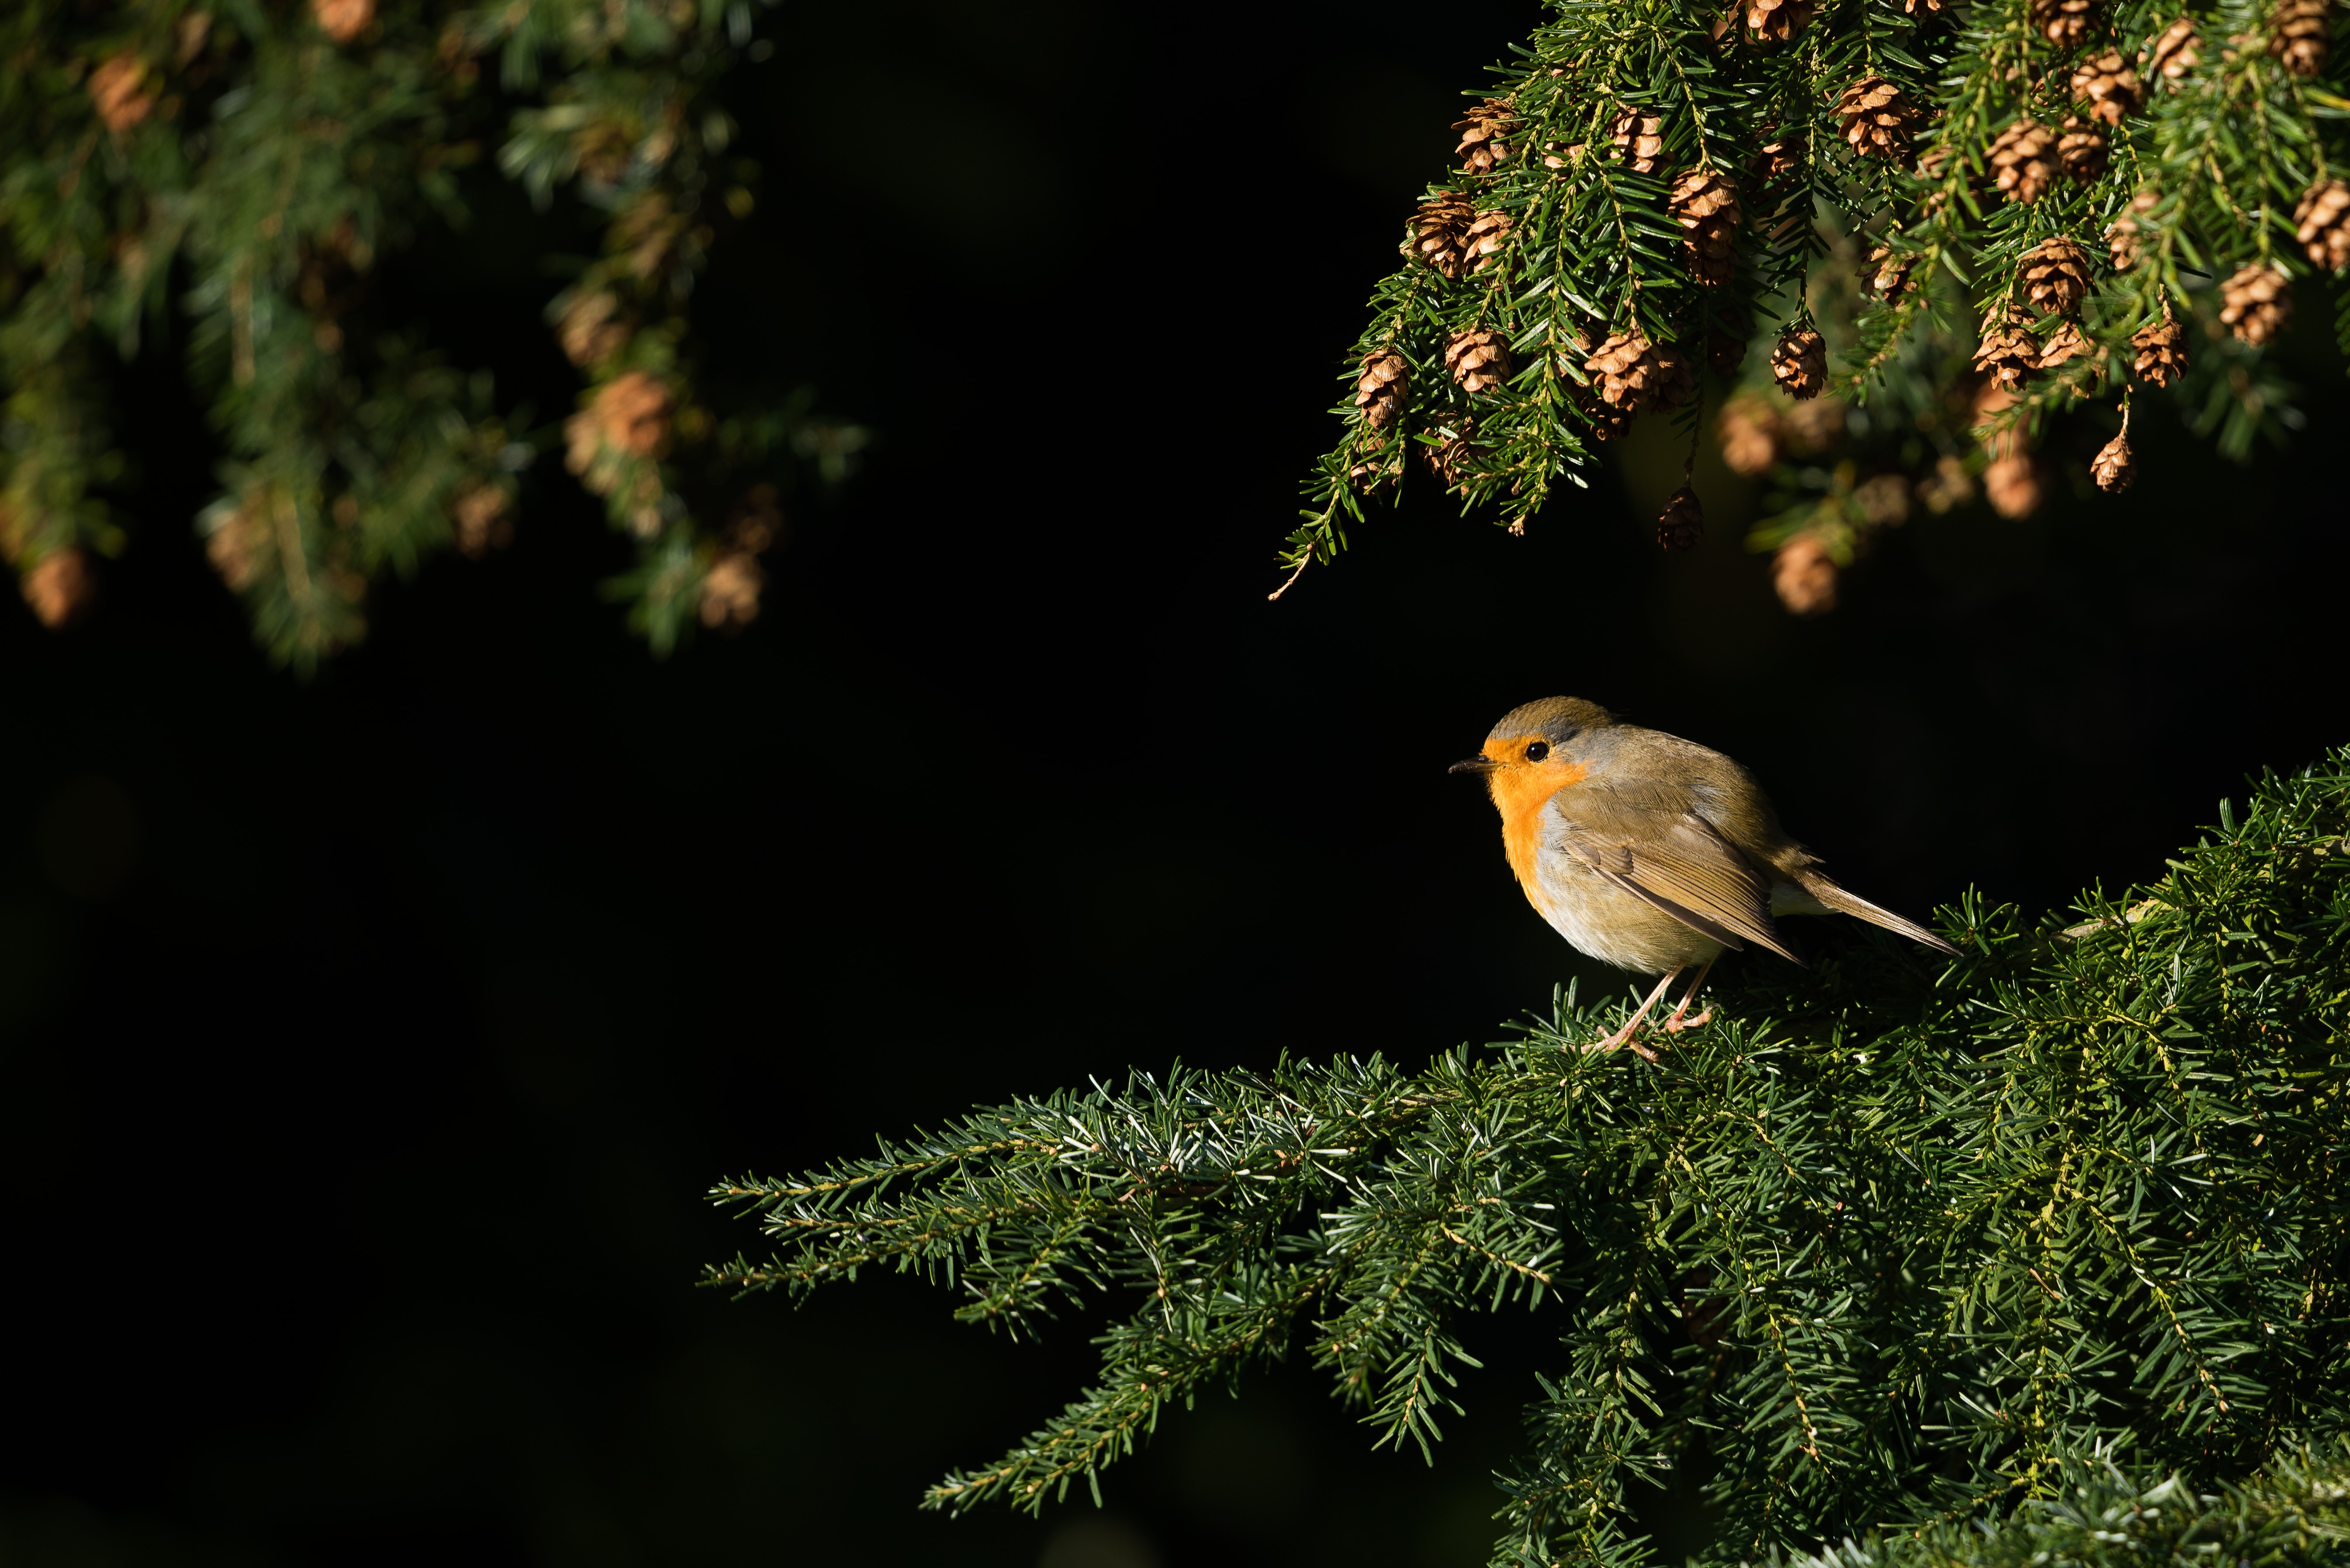 Tiny bird with pale brown, orange and white feathers in an evergreen tree.